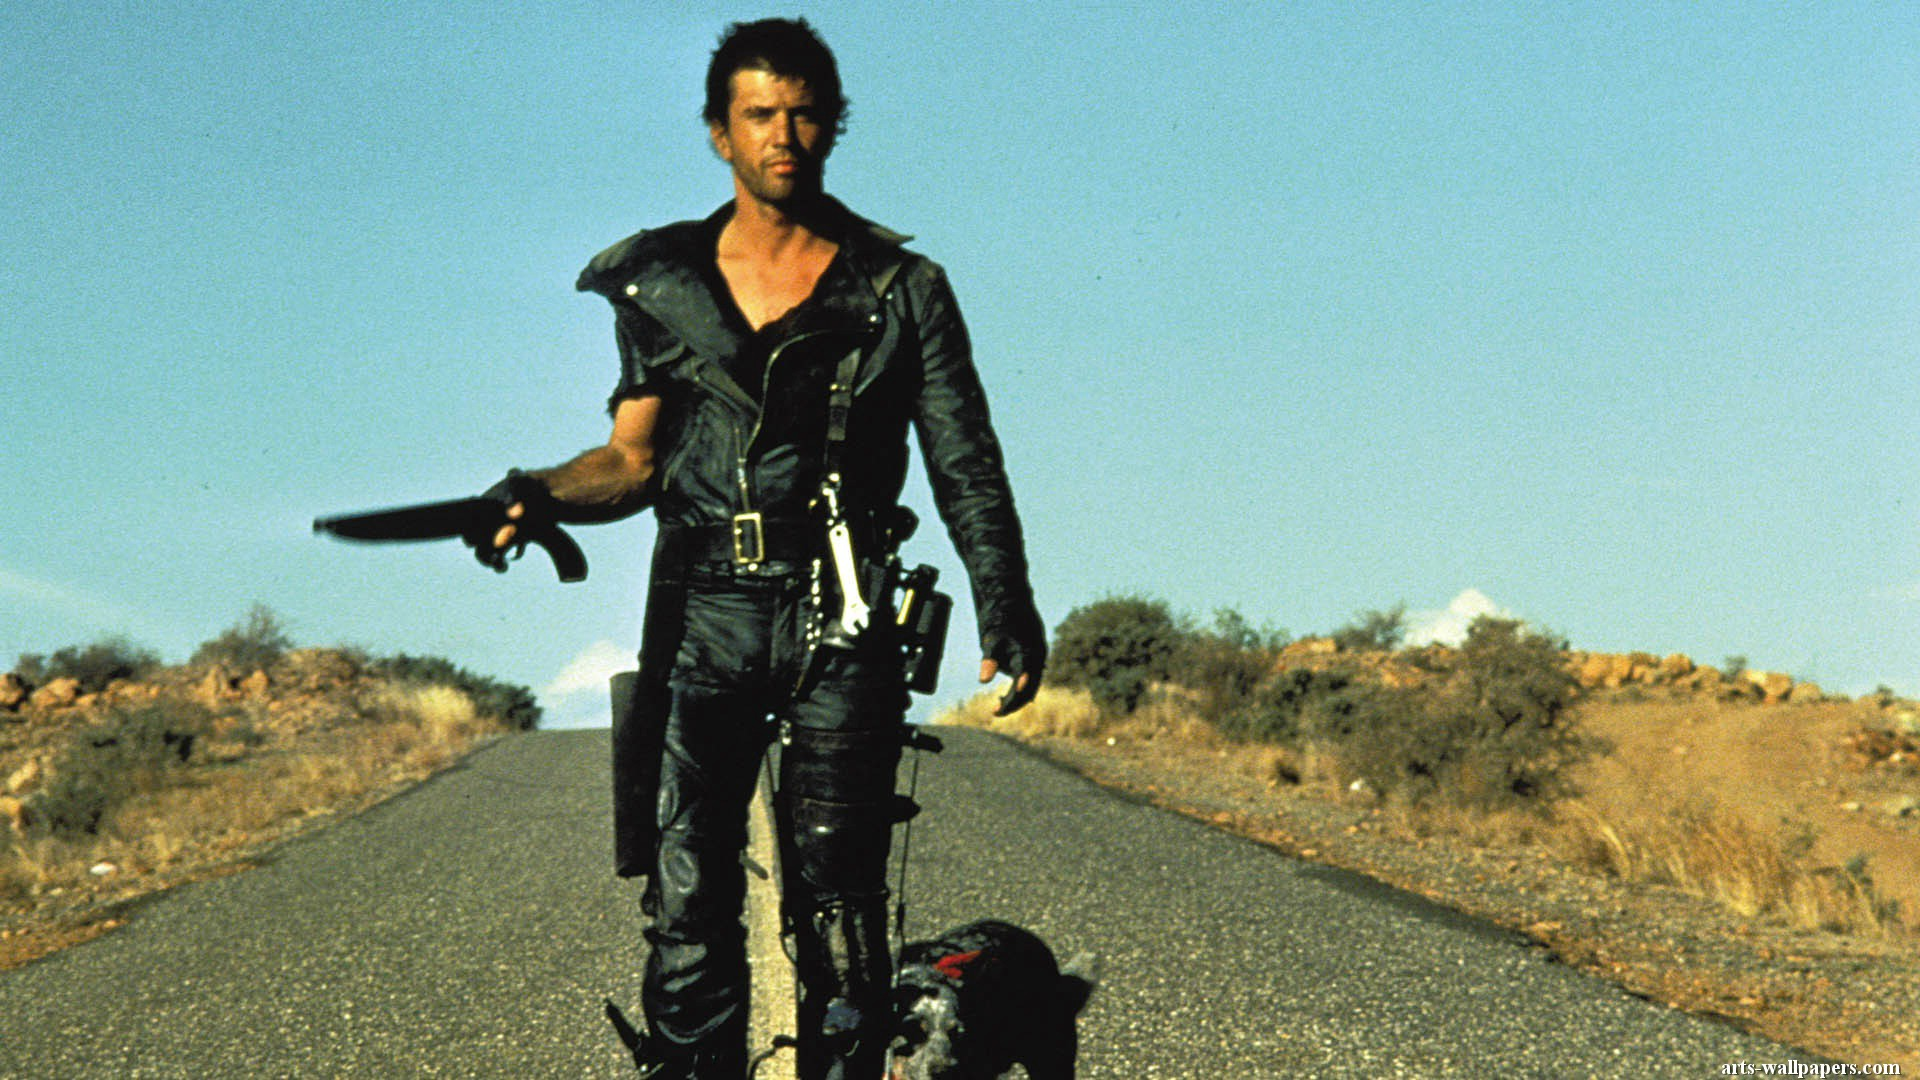 Mad Max Beyond Thunderdome 1985 Wallpaper Widescreen HD 1920x1080